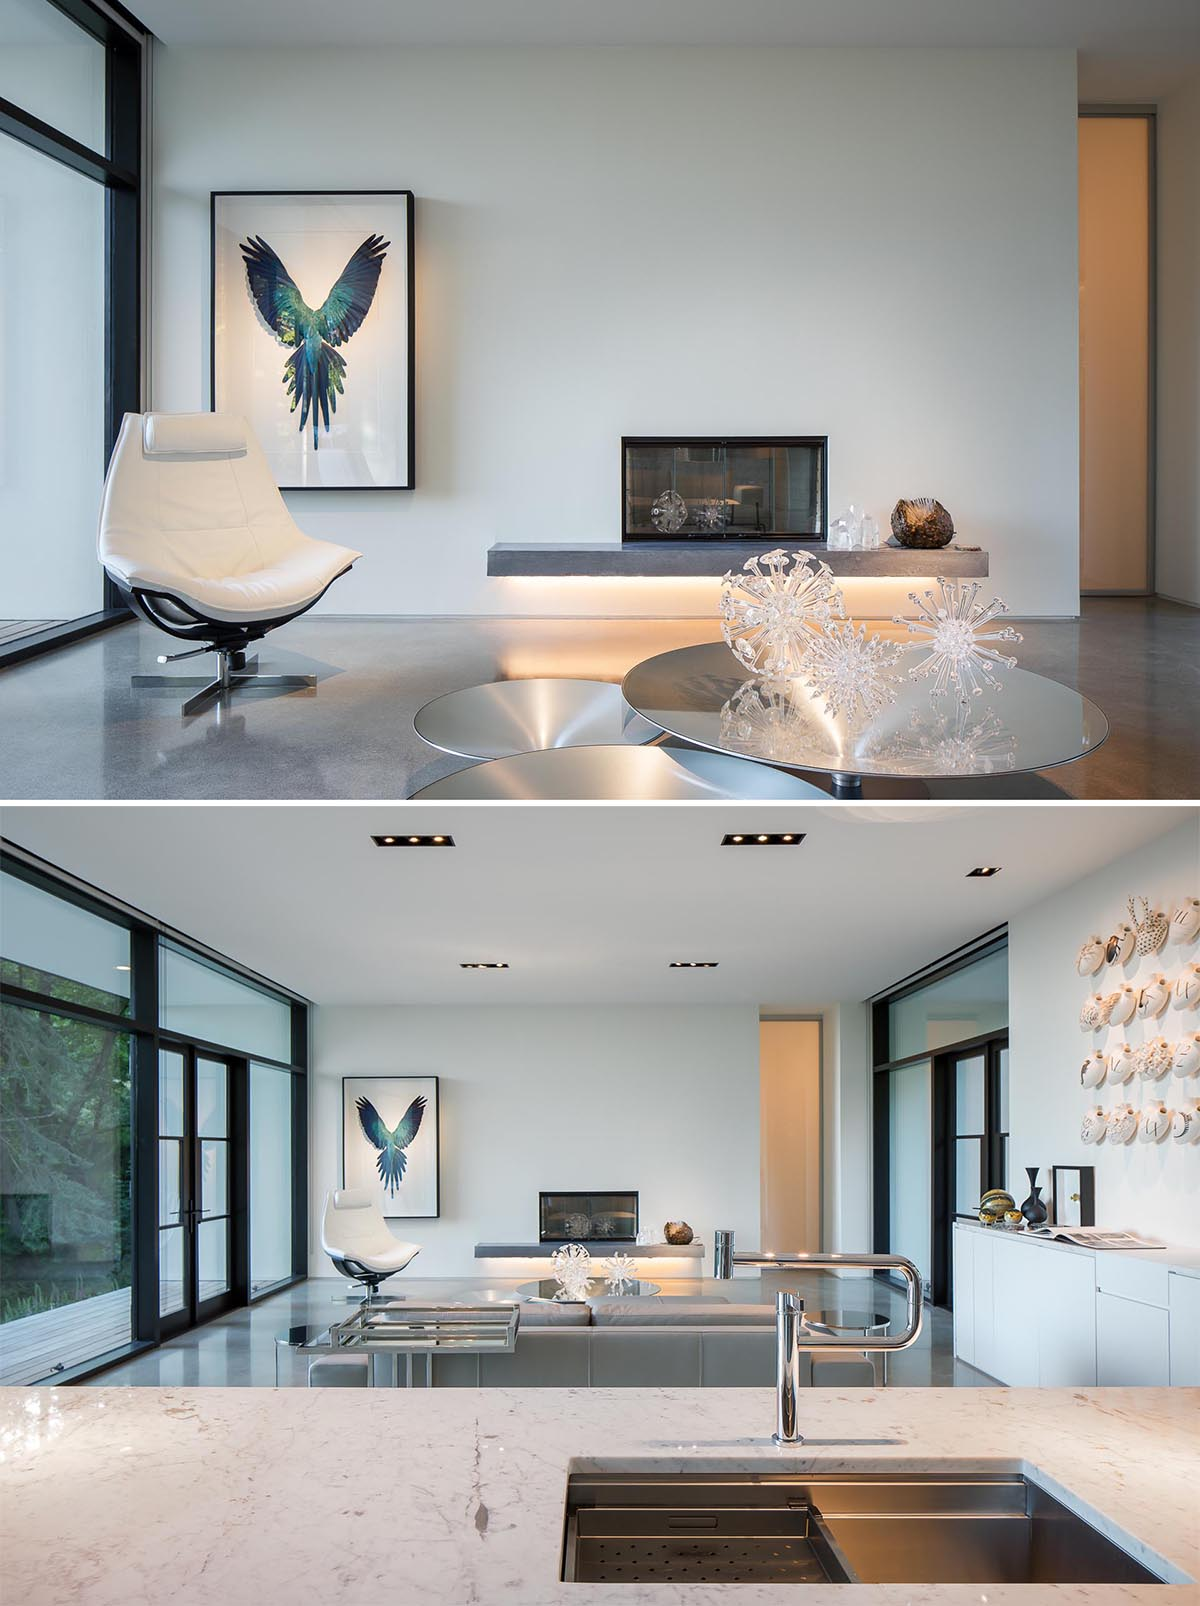 In this modern living room, there's a floating fireplace hearth with hidden lighting that reflects off the floor.